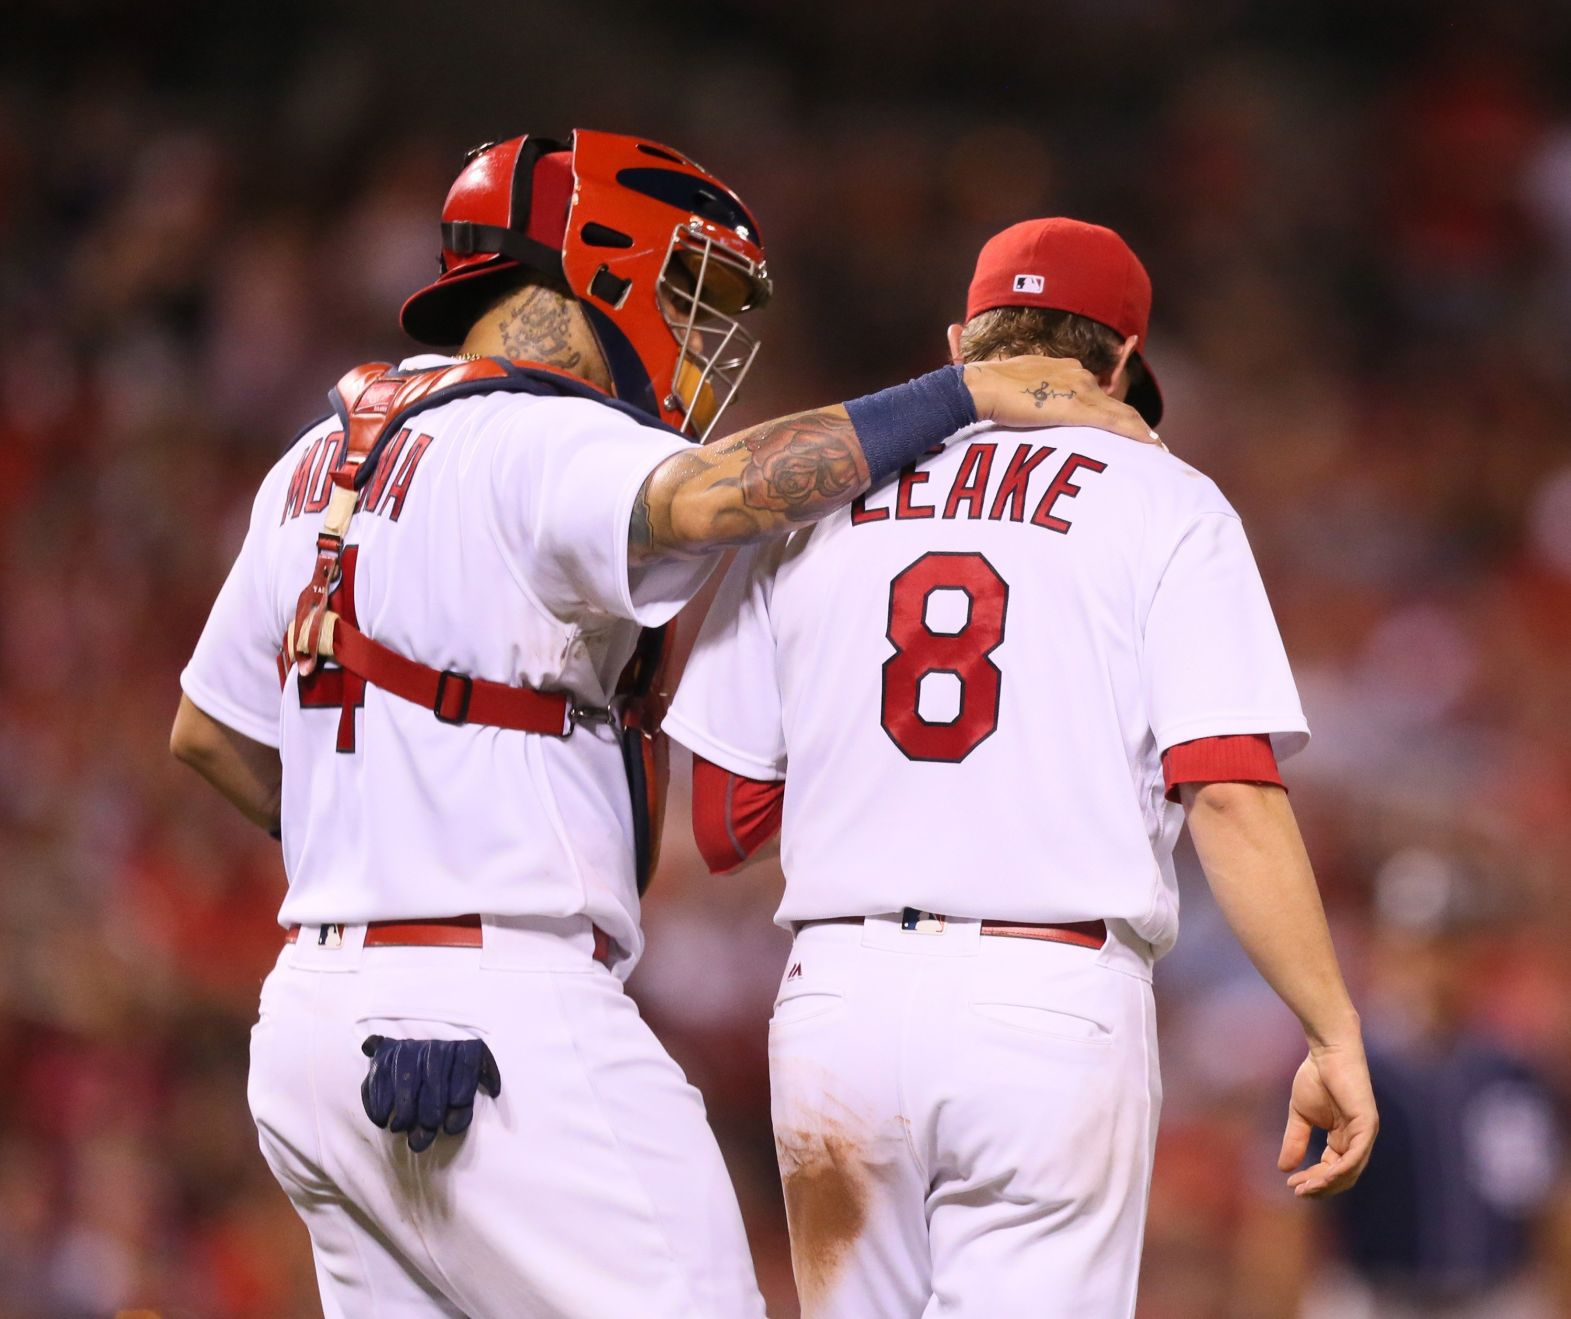 Leake holds the fort as Cardinals win